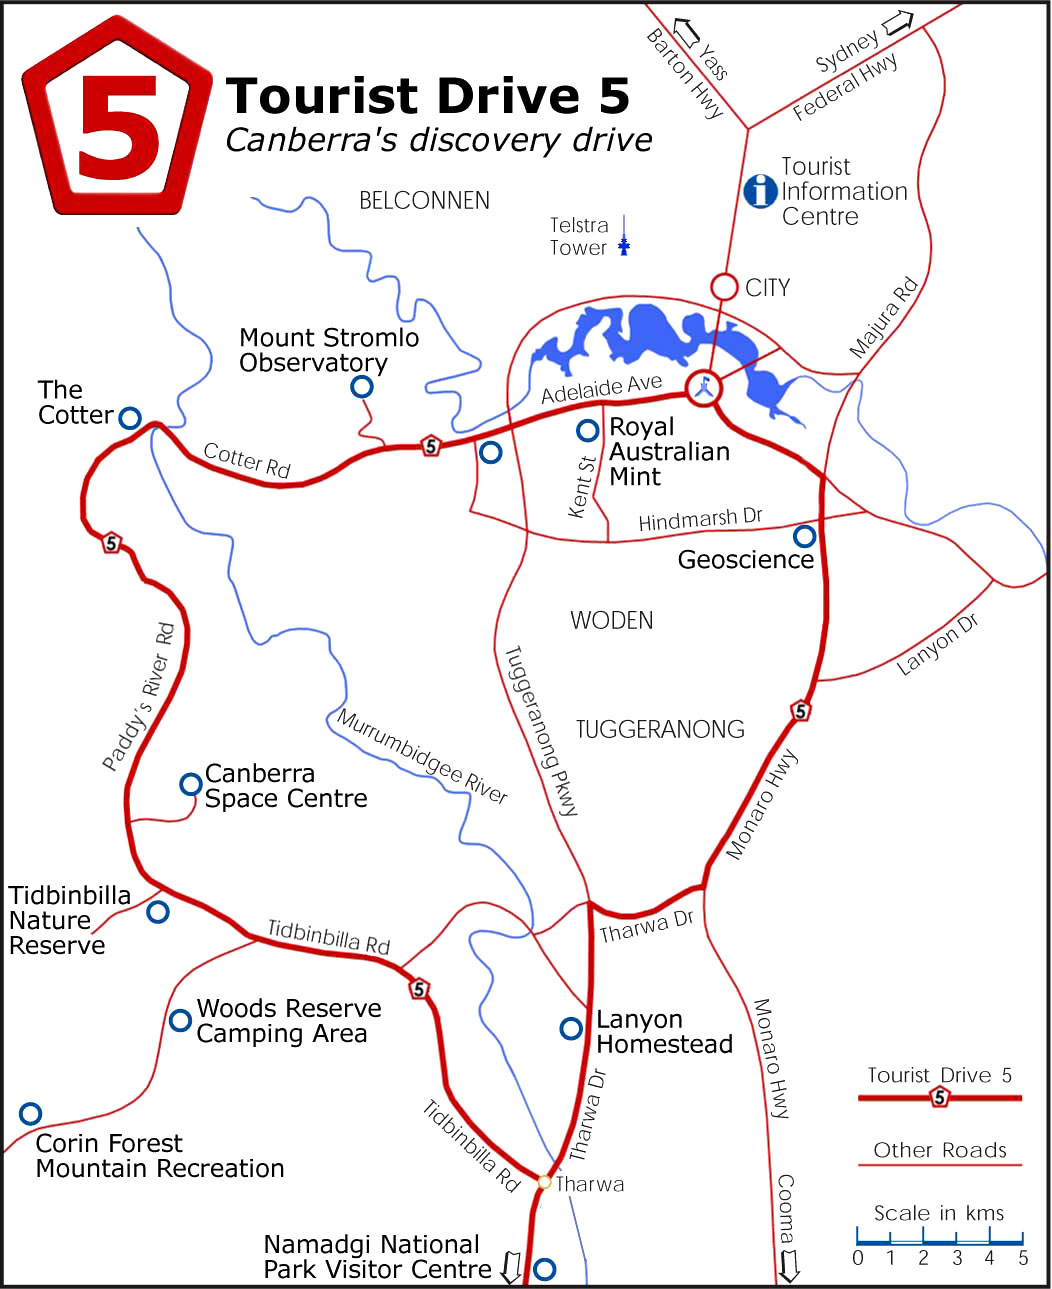 Map of Canberra showing Tourist Drive 5 and the Canberra Deep Space Communication Complex